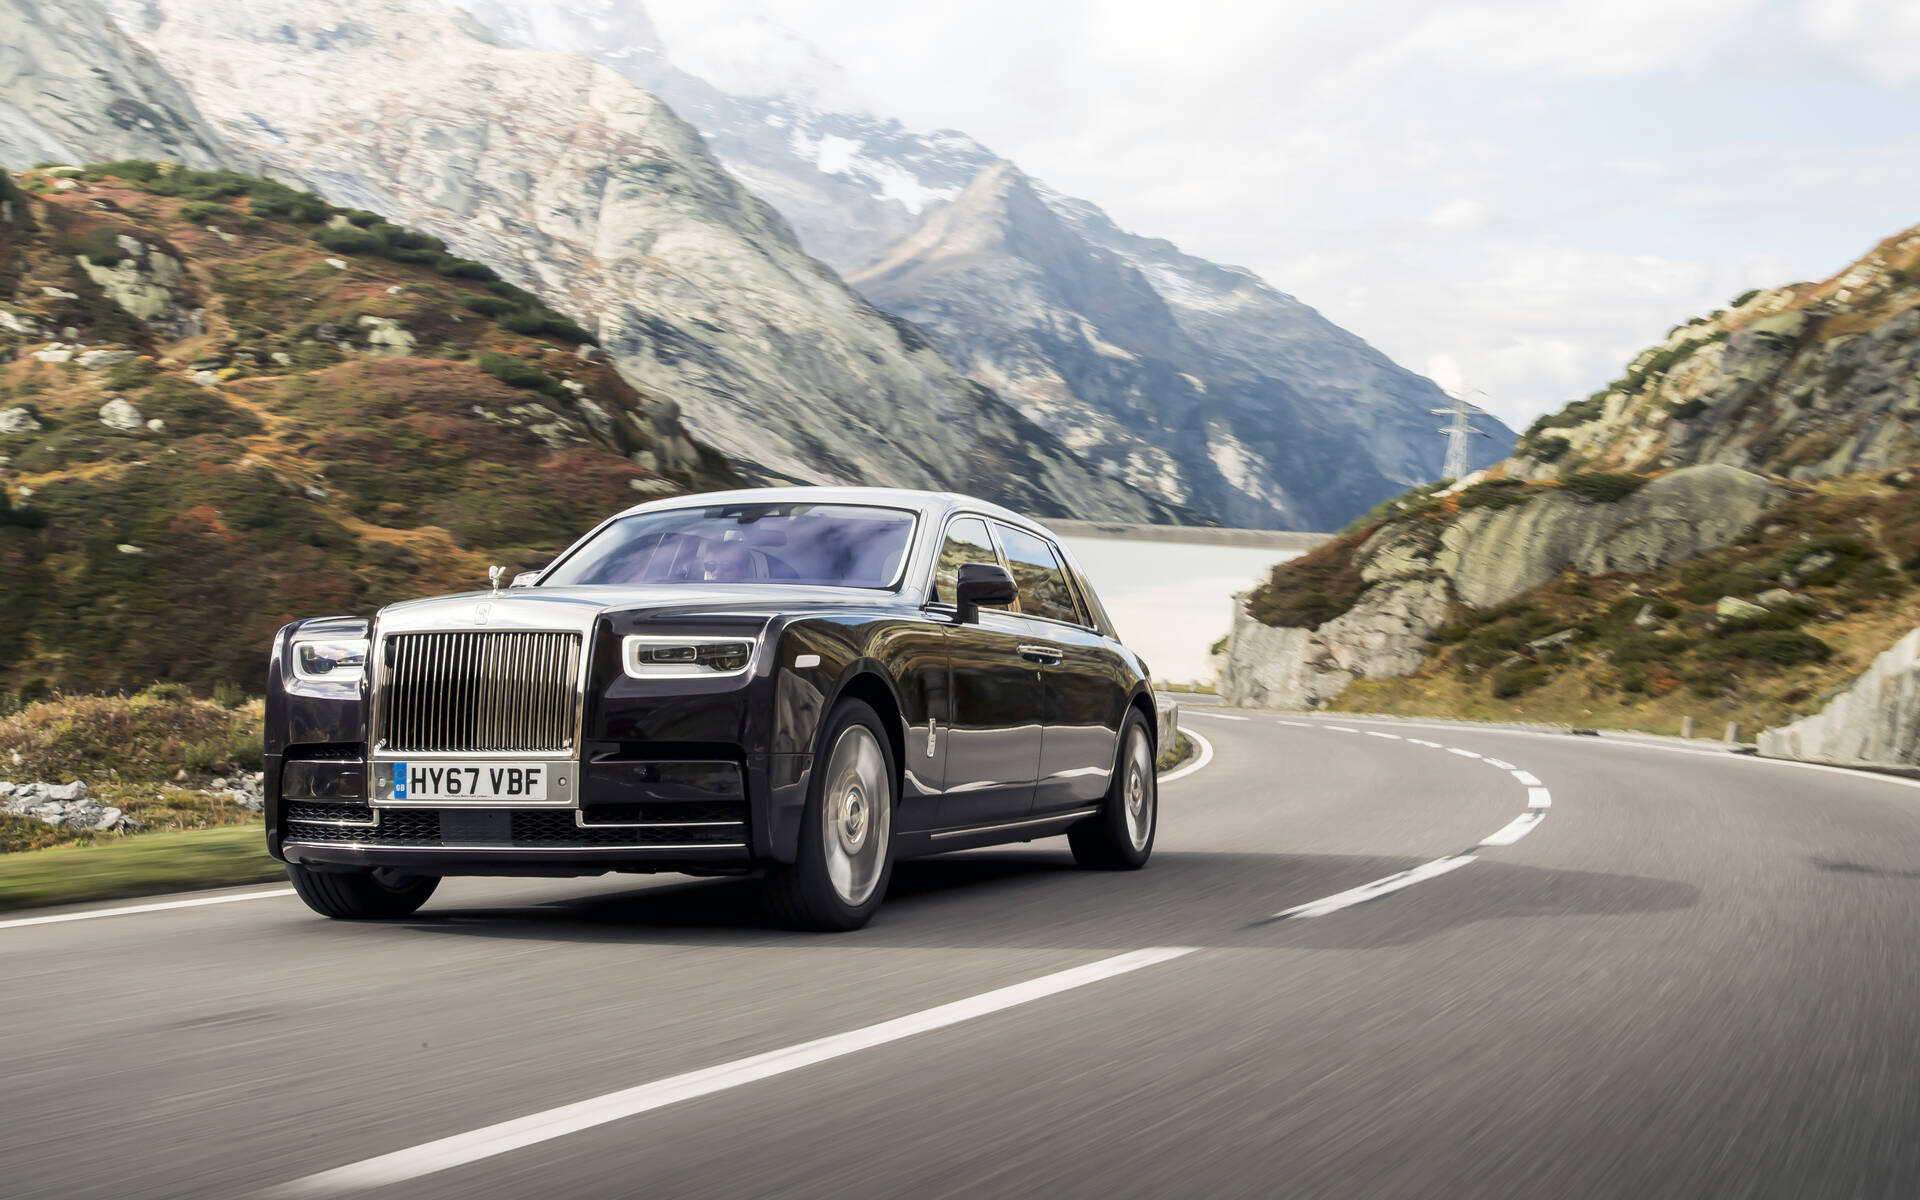 2021 Rolls Royce Phantom News Reviews Picture Galleries And Videos The Car Guide